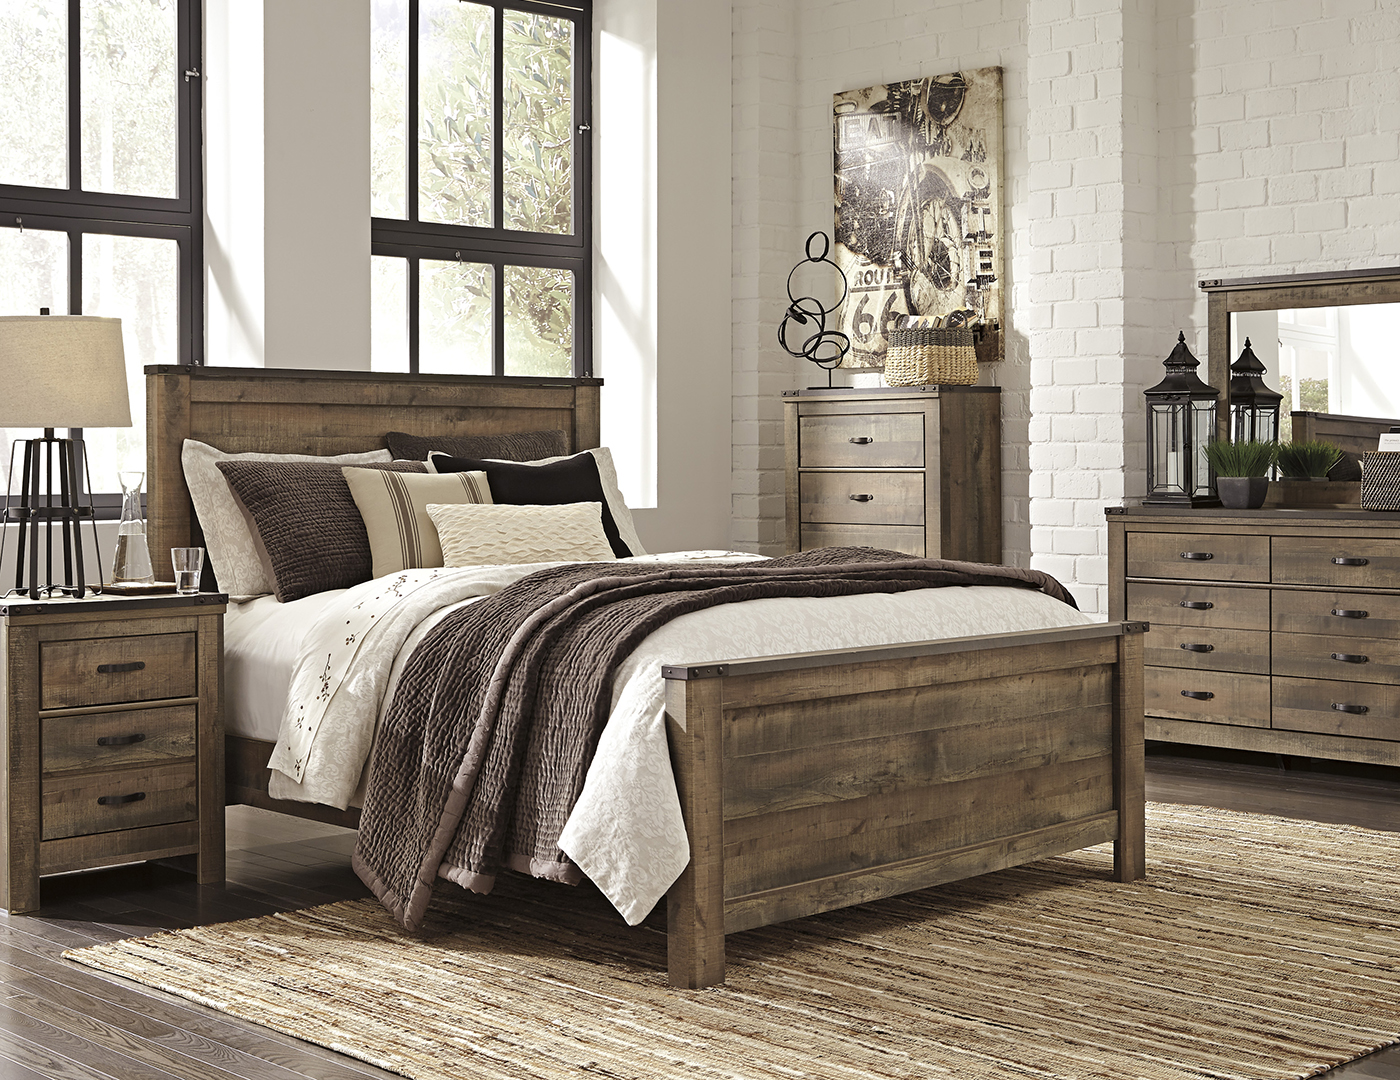 Trinell 5 Pc King Bedroom Set